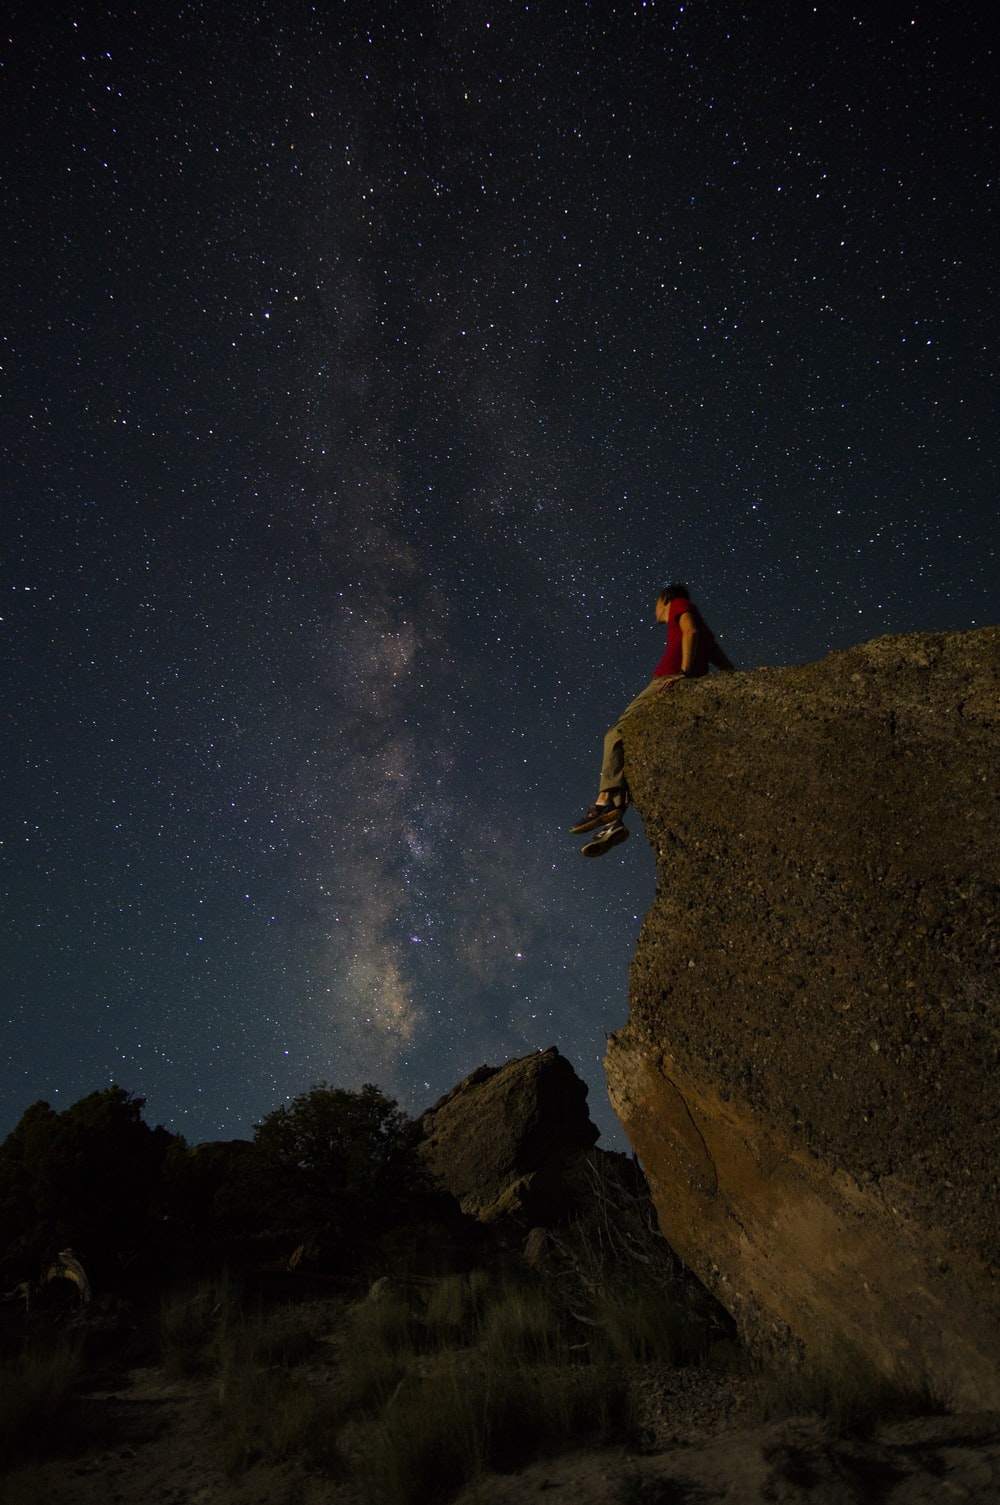 person sitting on edge of large rock under starry night sky